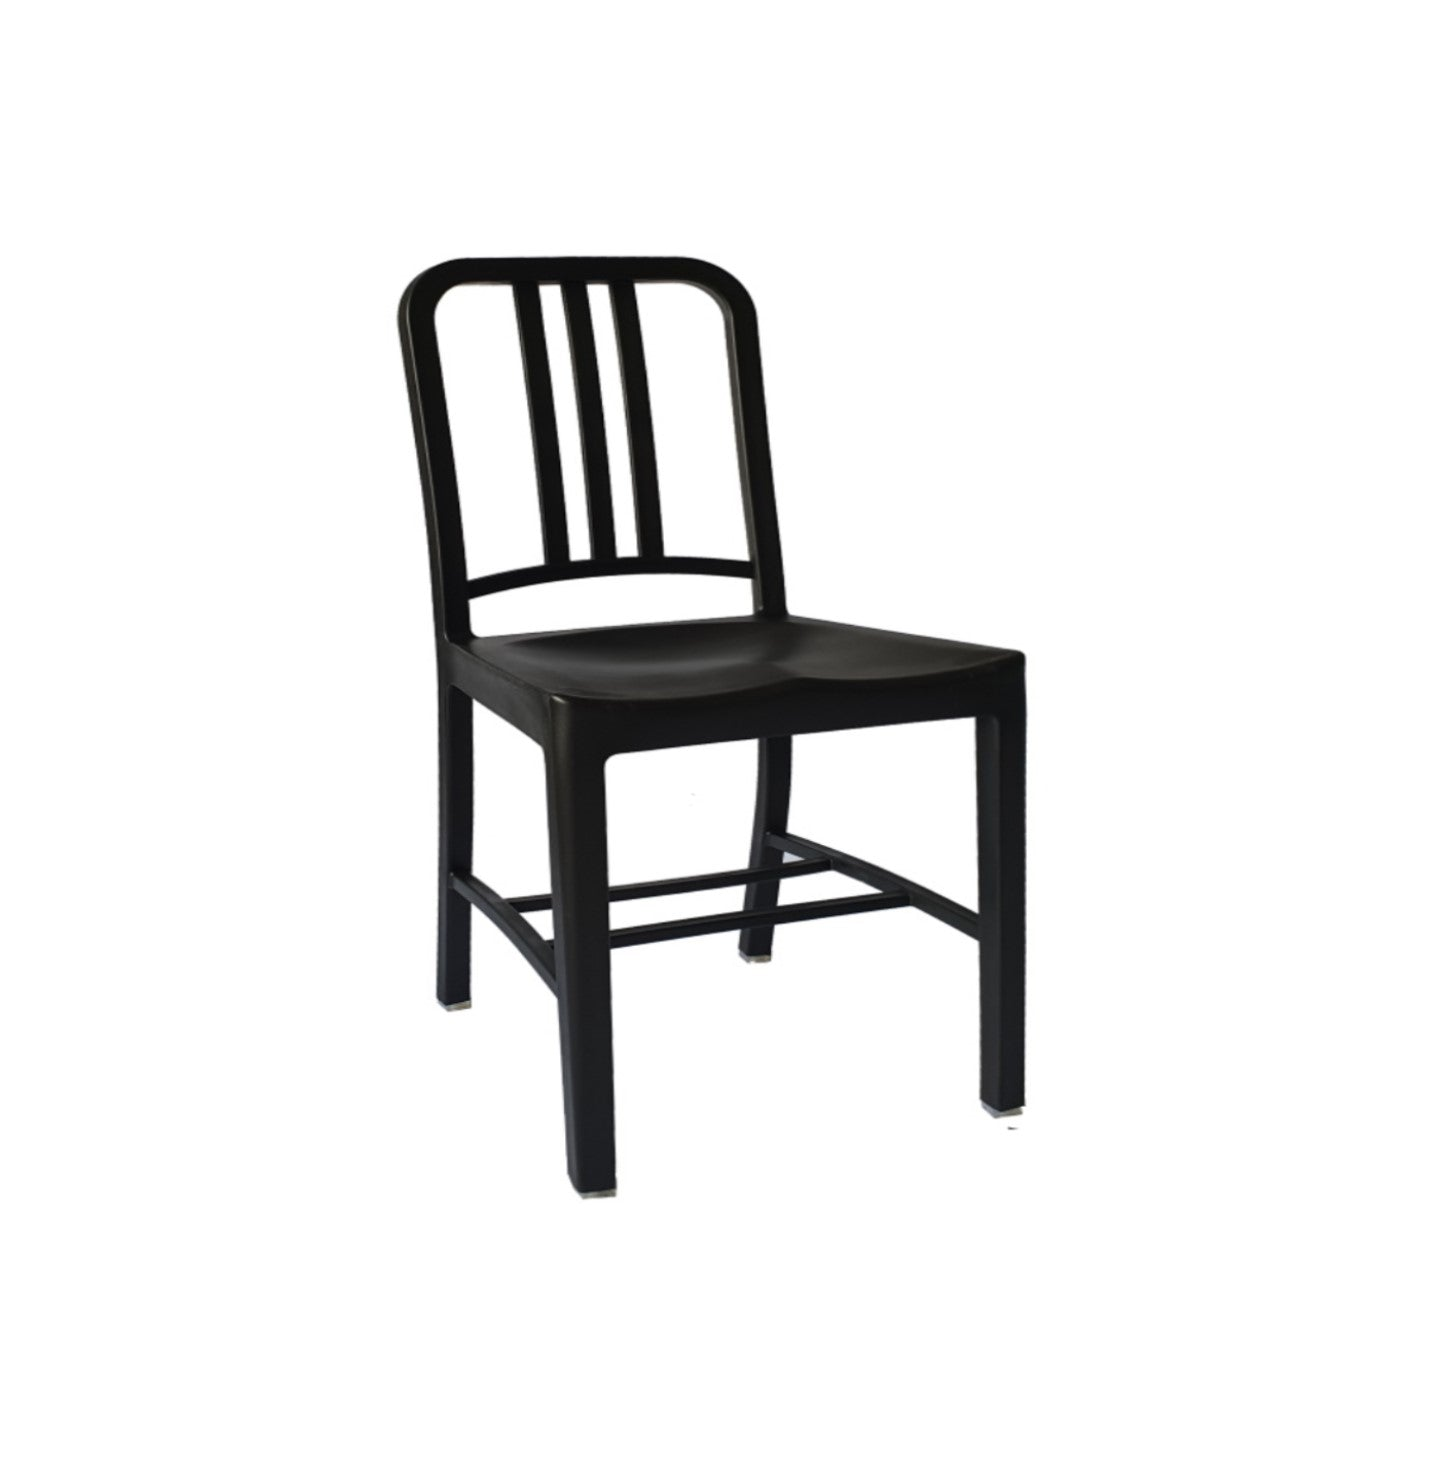 Polypropylene Dining Chair – EF099